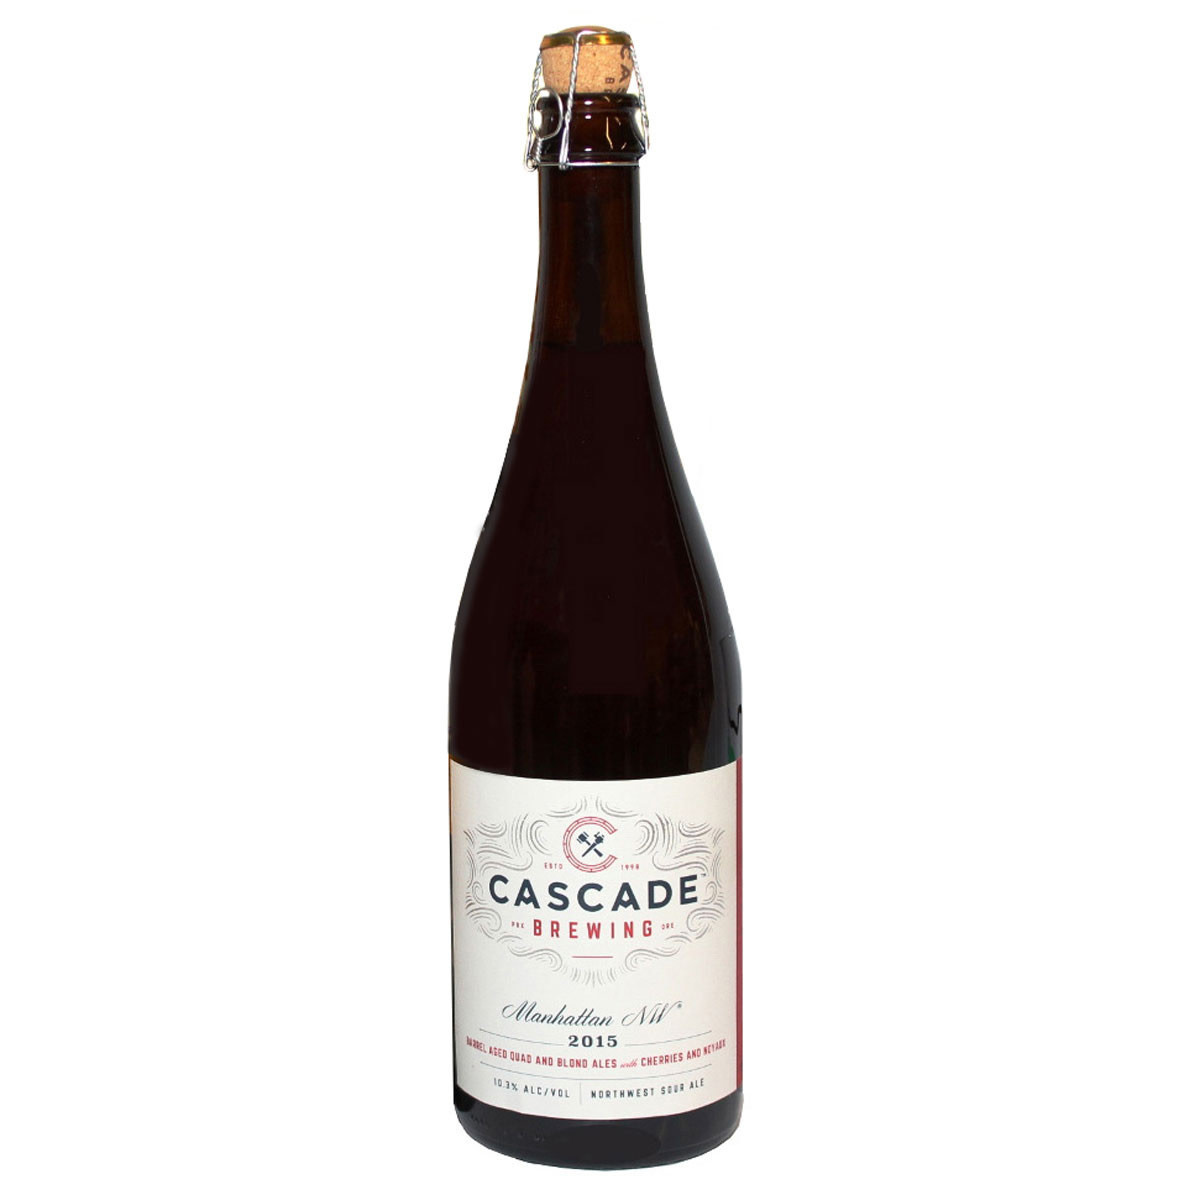 "Cascade Brewing "" Manhattan NW"" Quad/Blonde Ale with cherries and noyaux 750ml bottle- Portland, Oregon"